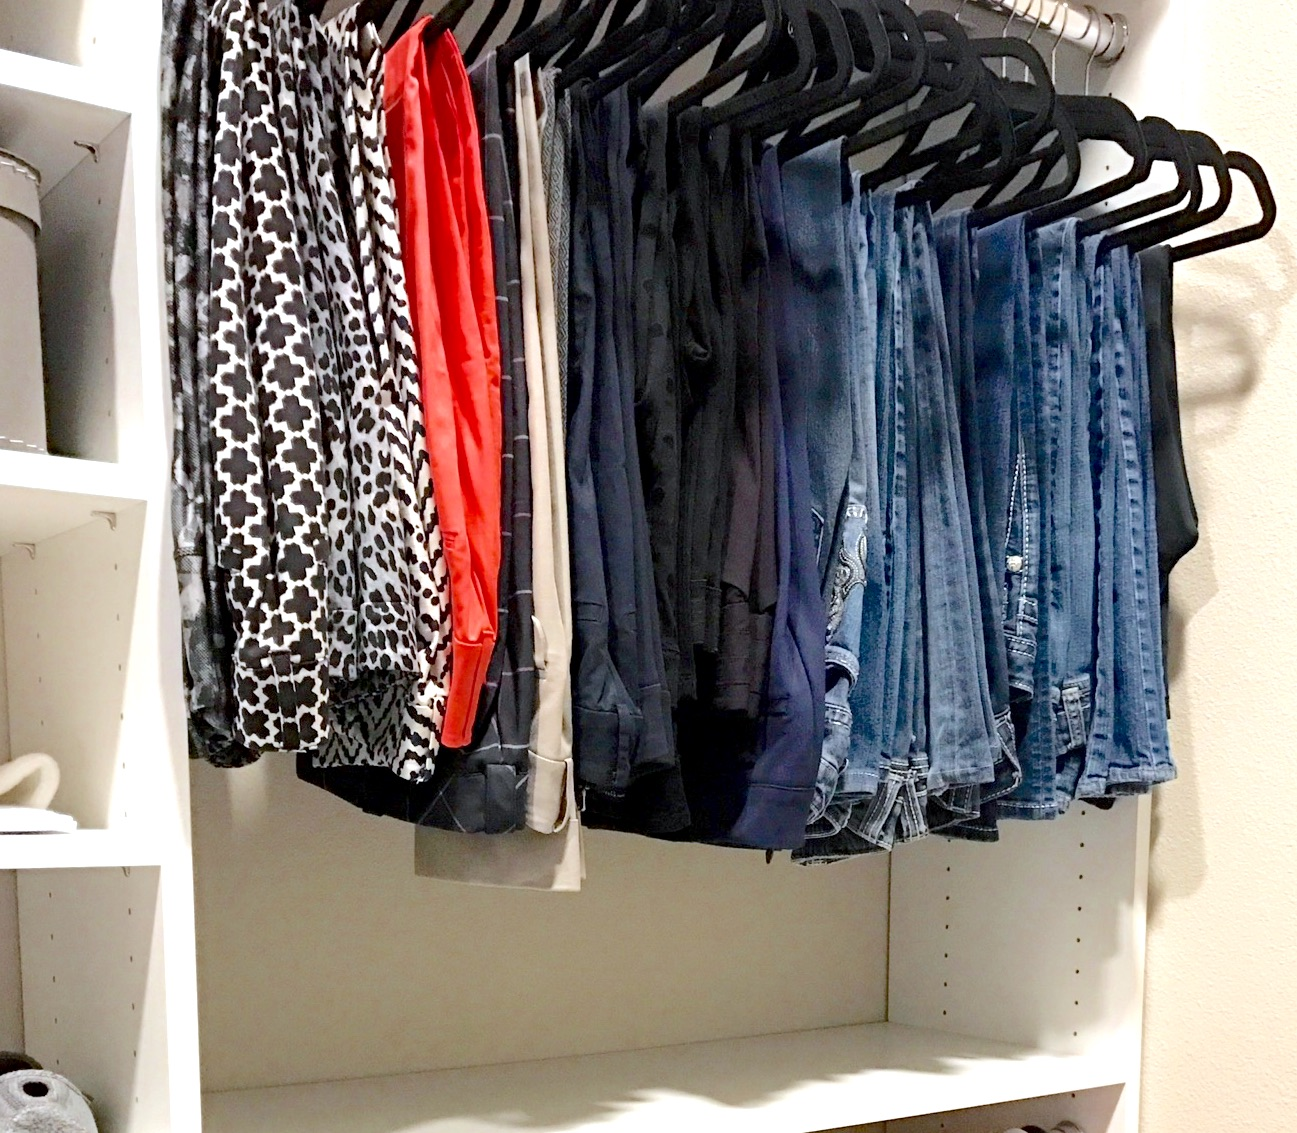 Felt hangers, also known as velvet hangers or Huggable Hangers, provide efficient, uniform storage for jeans and slacks. Get 15% off a variety of felt hangers and free shipping at  Hangers.com  with promo code TULSA.